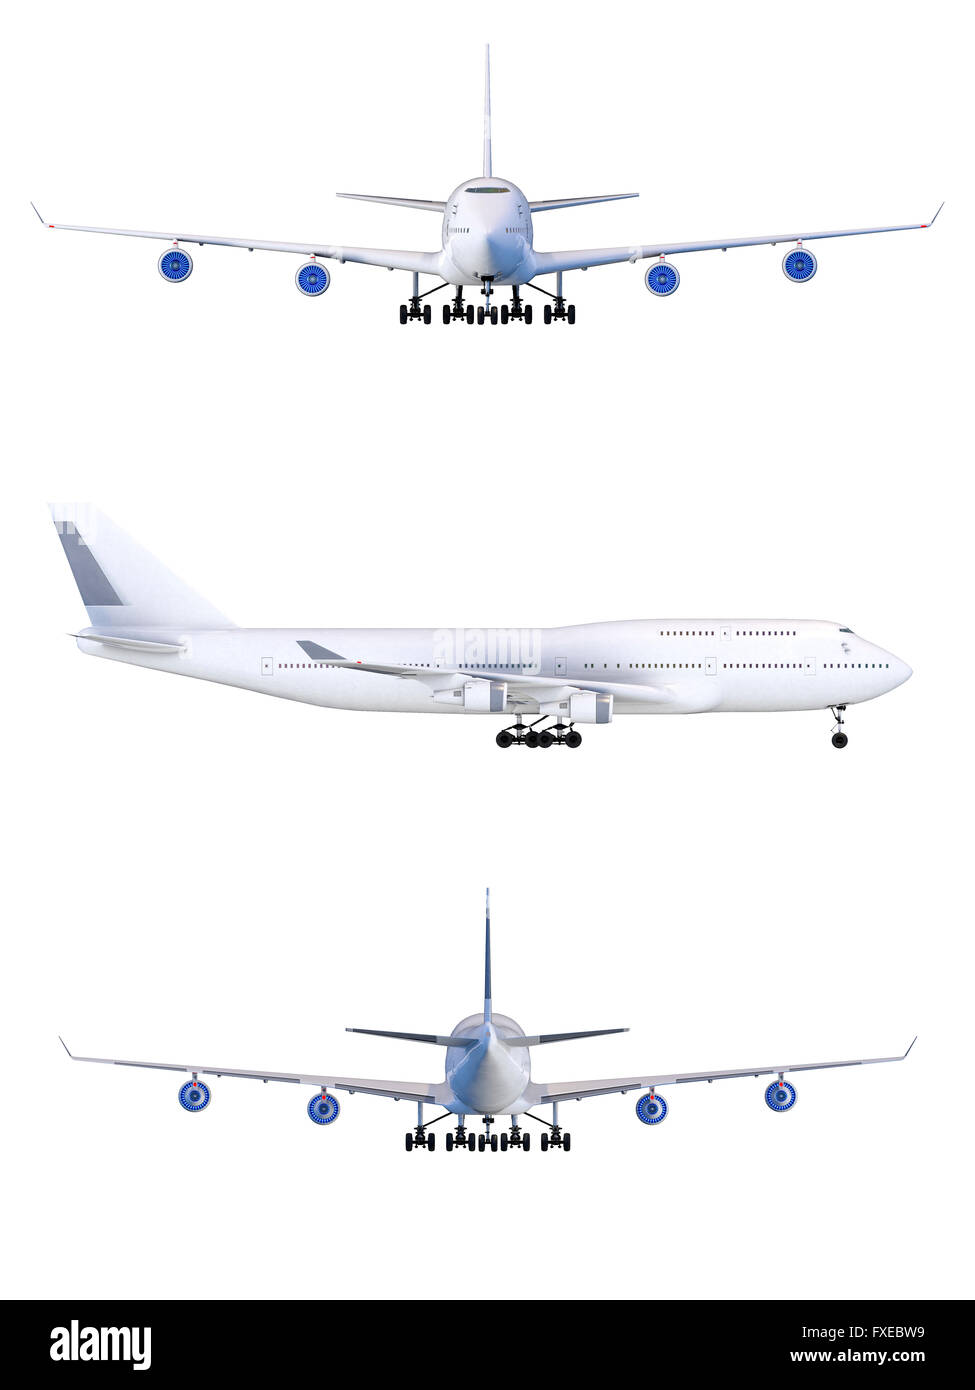 Boeing-747. travel Plane isolated air transport model - Stock Image